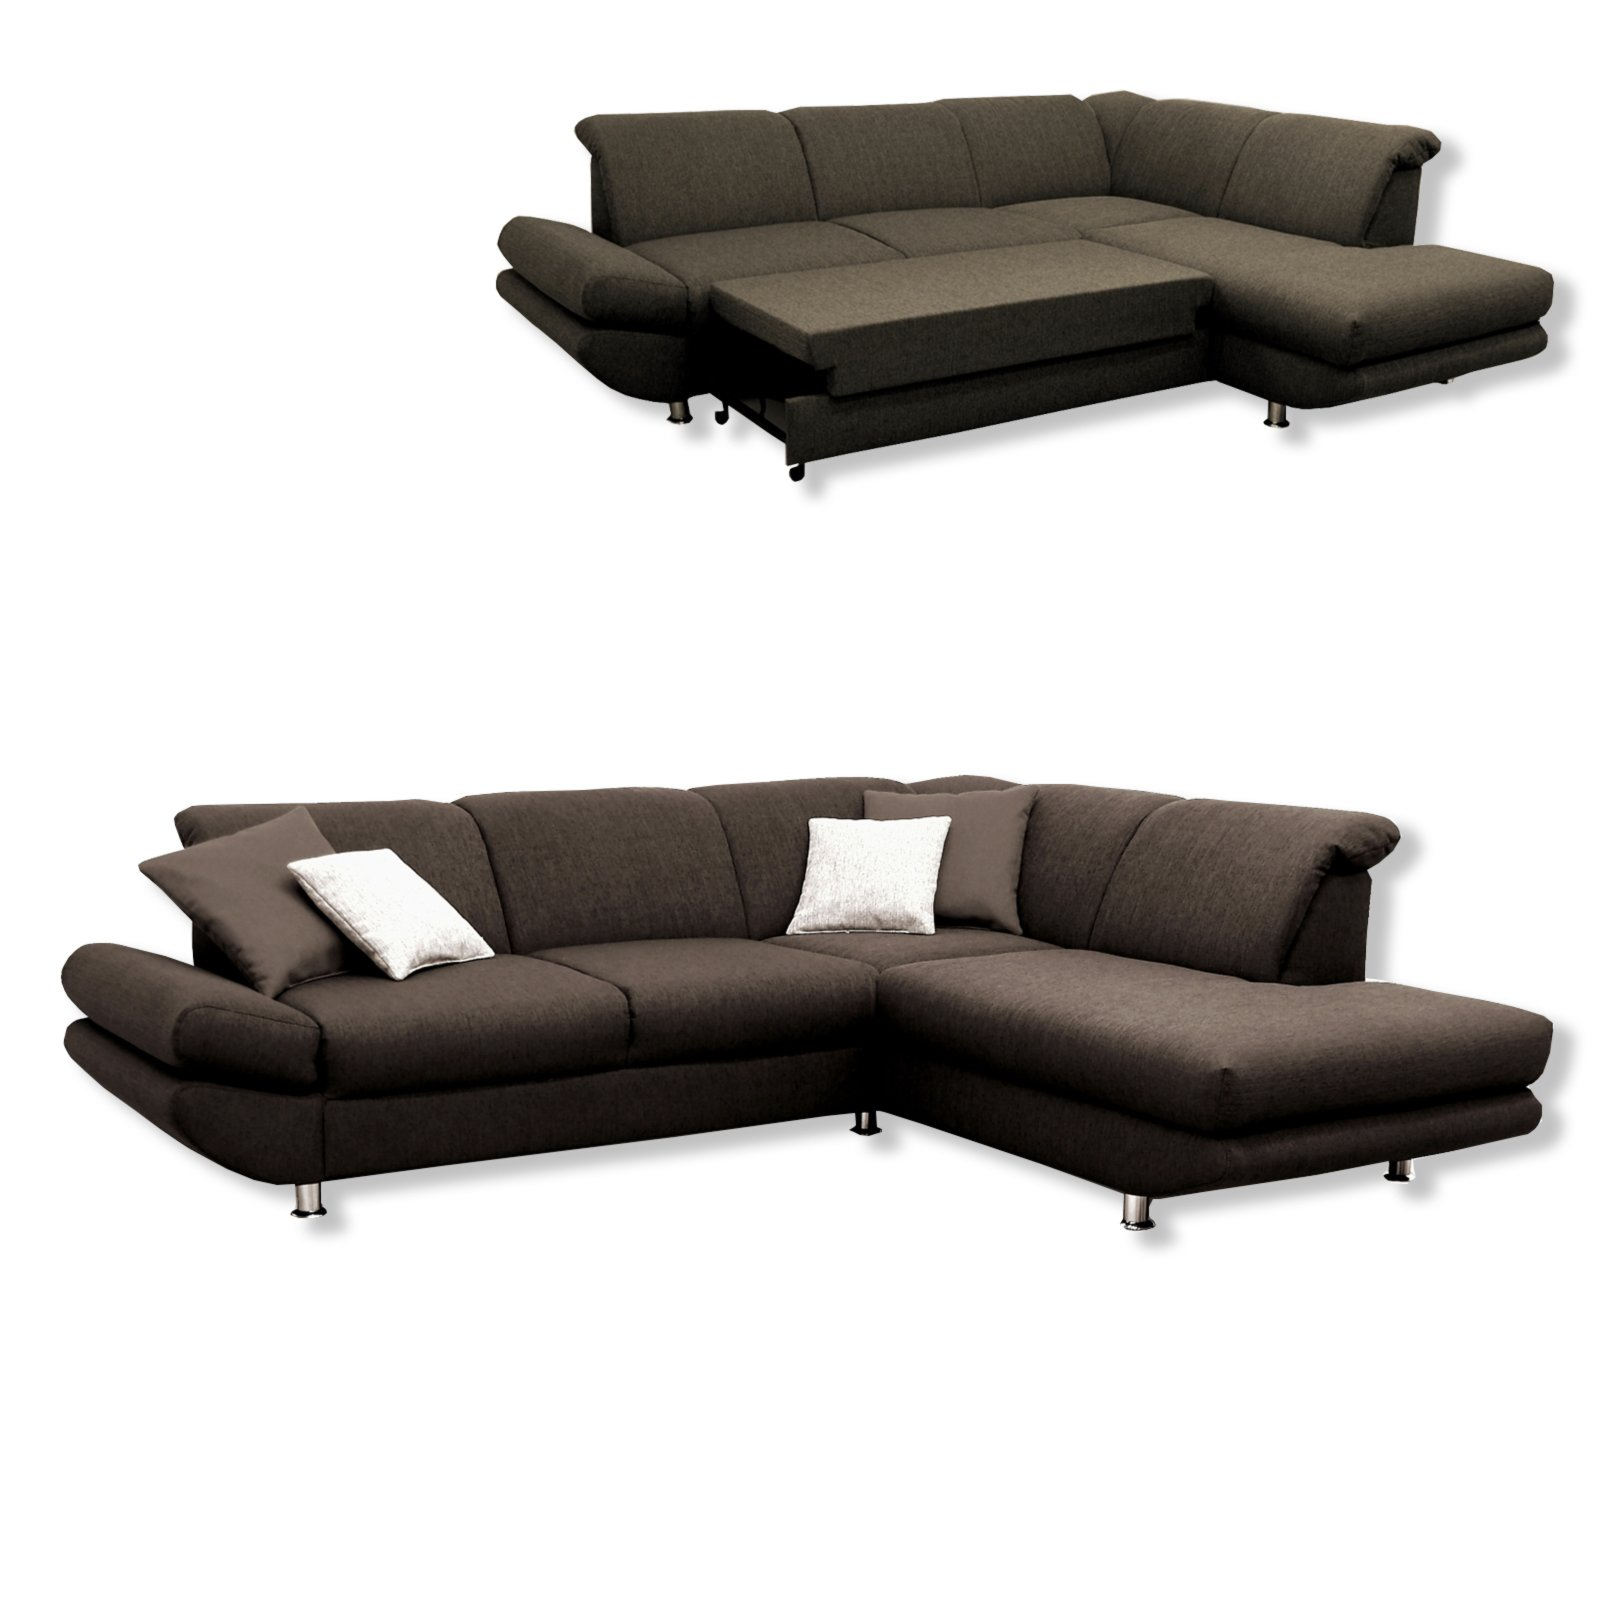 polsterecke braun liegefunktion ottomane rechts ecksofas l form sofas couches. Black Bedroom Furniture Sets. Home Design Ideas